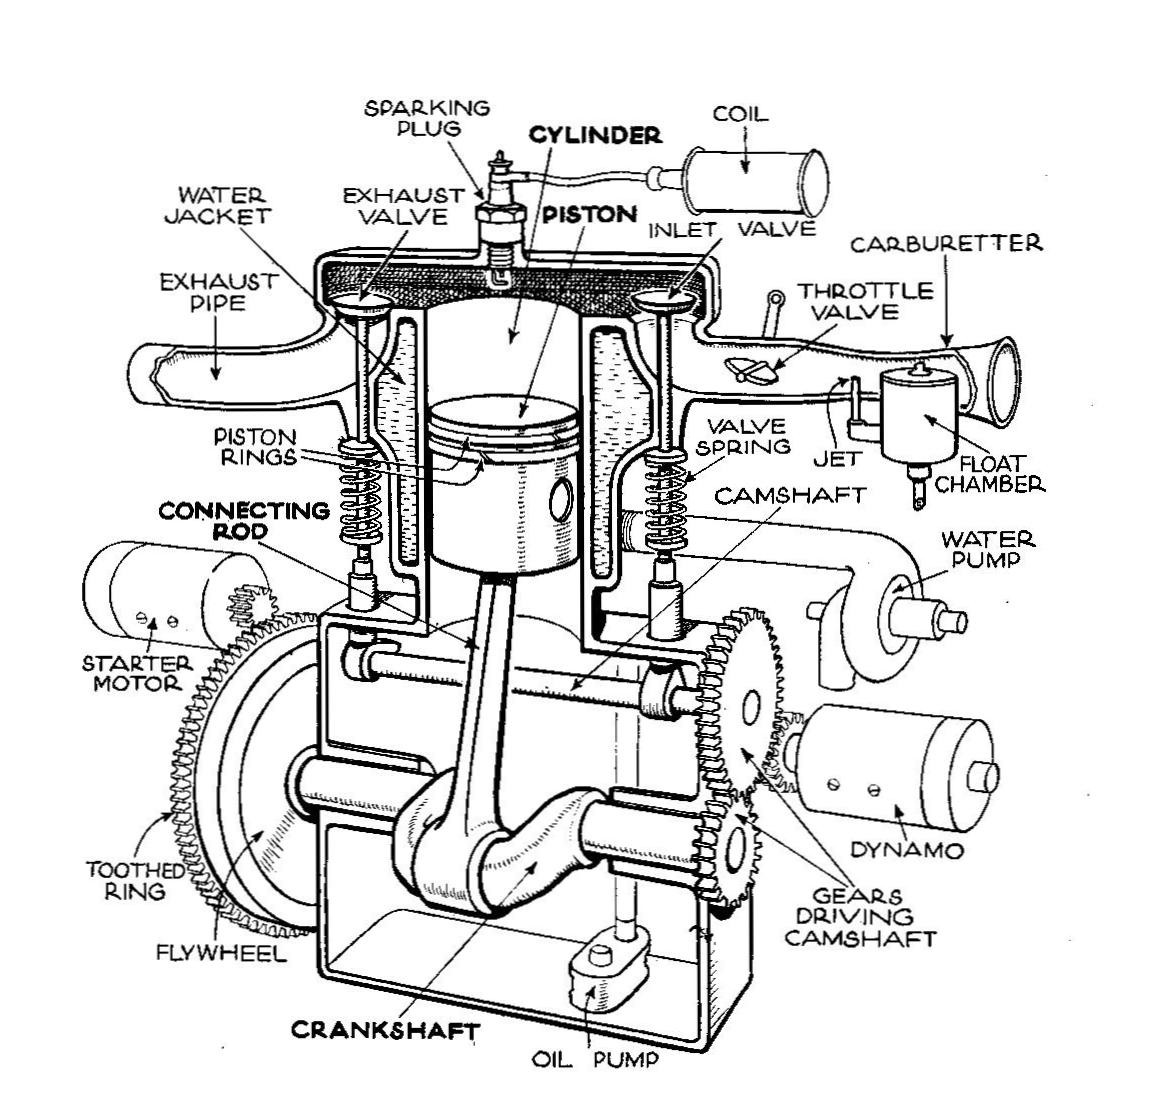 hight resolution of 6 cylinder engine diagram